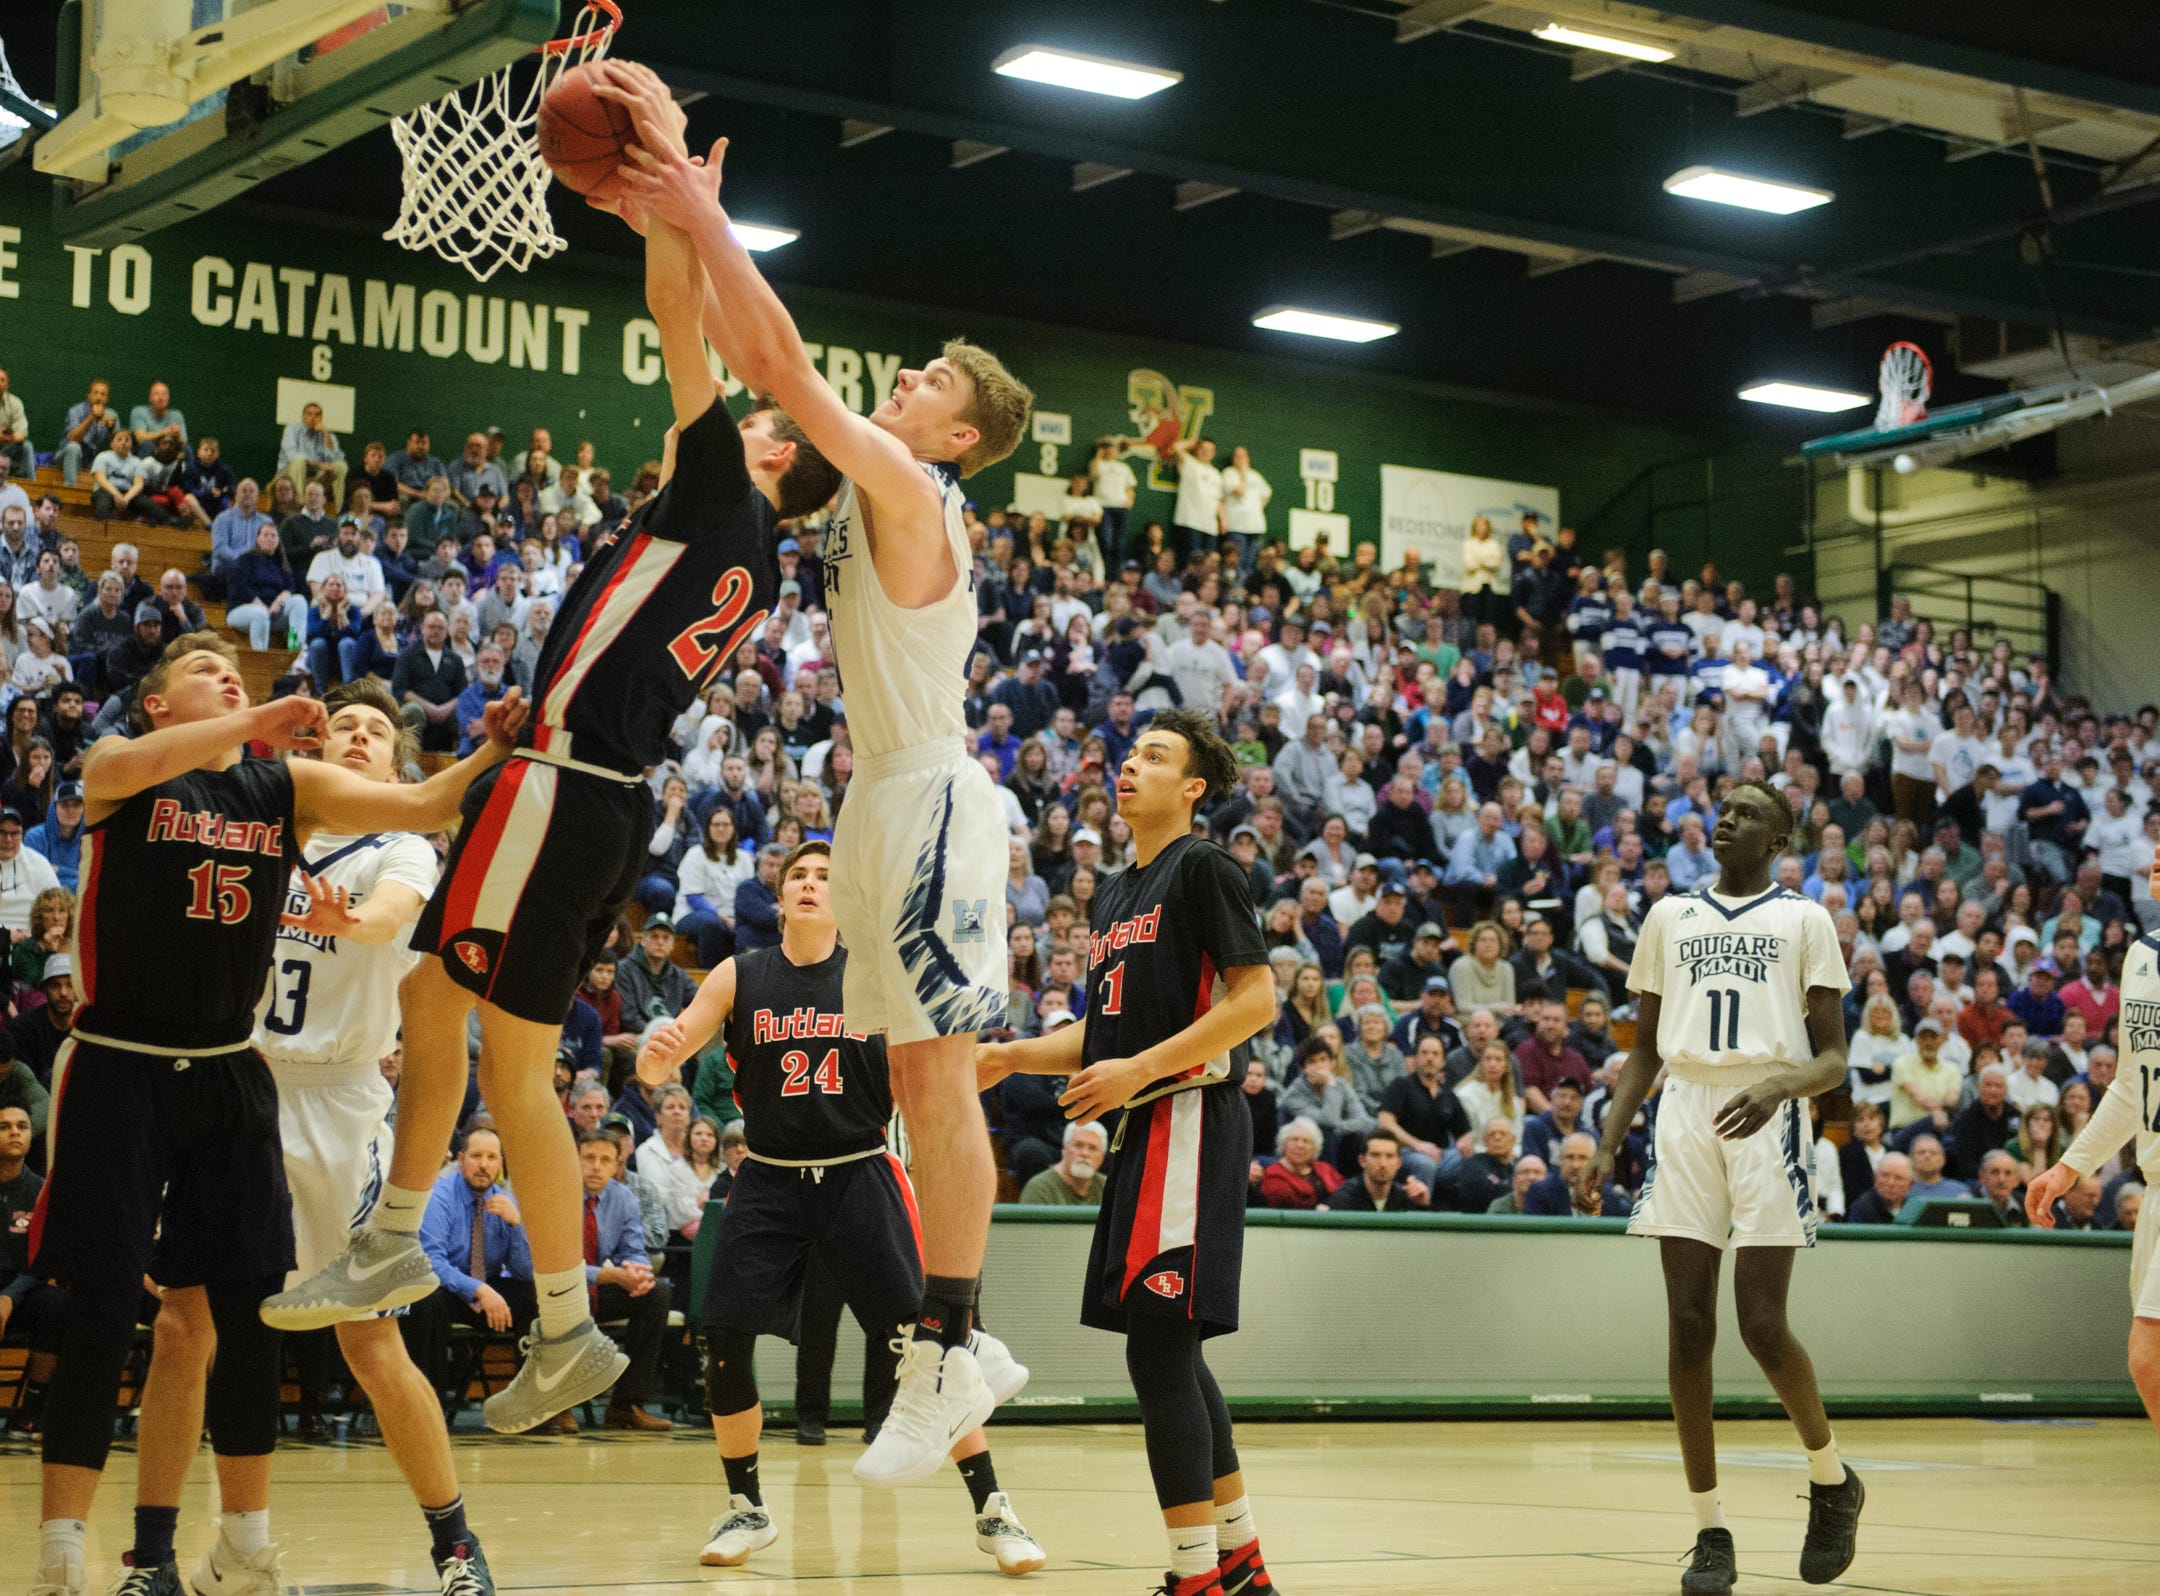 Rutland's Eric Coughlin (20) and MMU's Connor Philbrick (20) battle for the rebound during the boys DI semi final basketball game between the Rutland Raiders and the Mount Mansfield Cougars at Patrick Gym on Monday night March 11, 2019 in Burlington, Vermont.